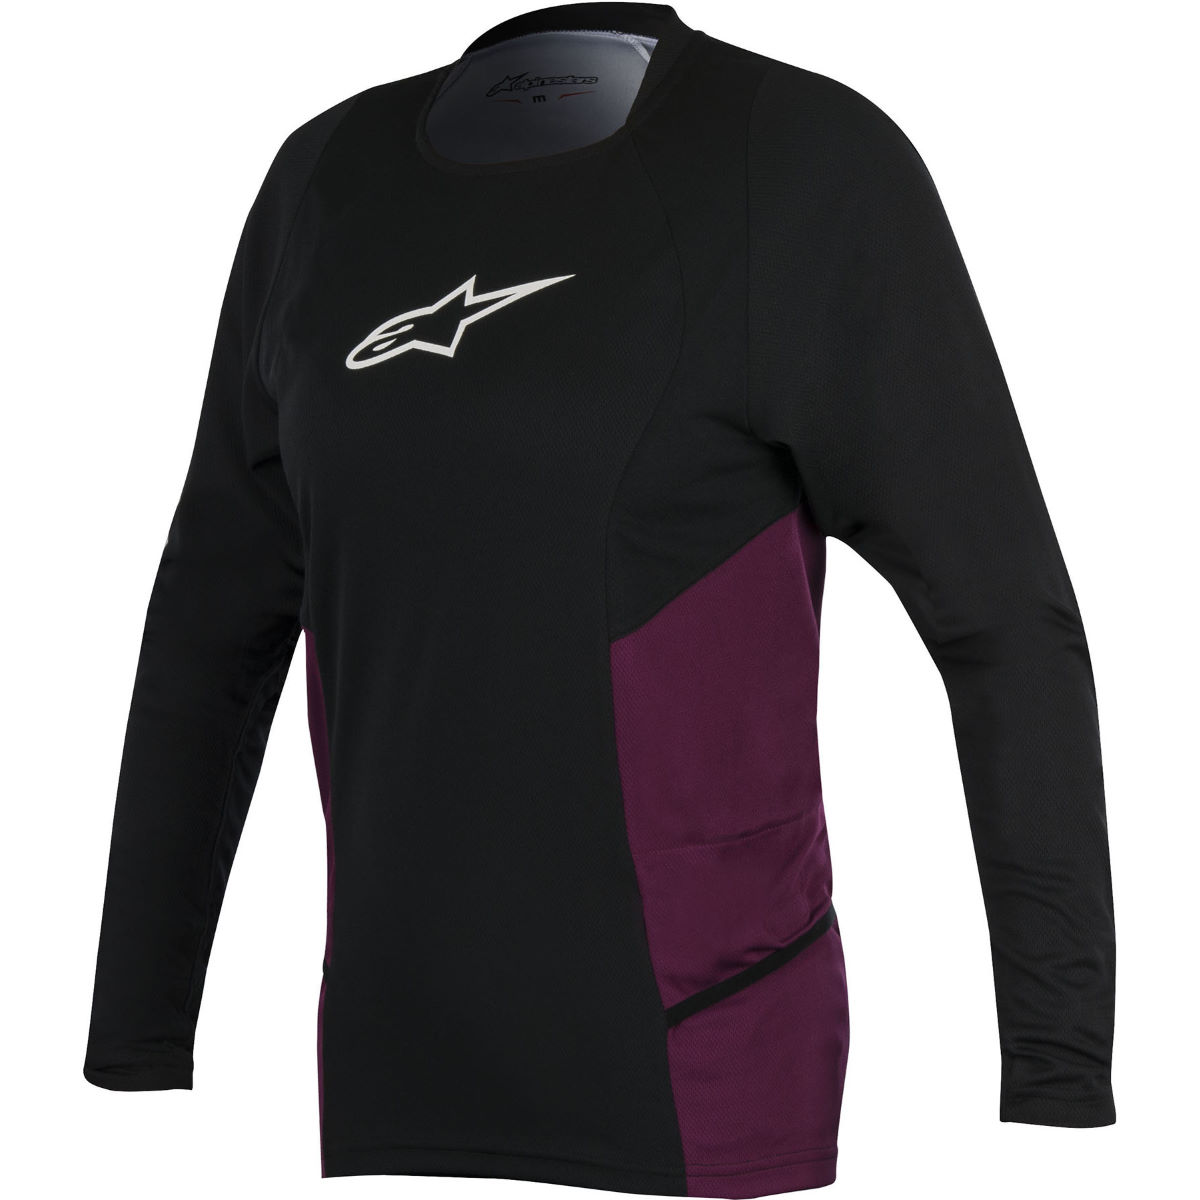 Dhb Classic Womens Windproof Softshell - Spiral   Jackets